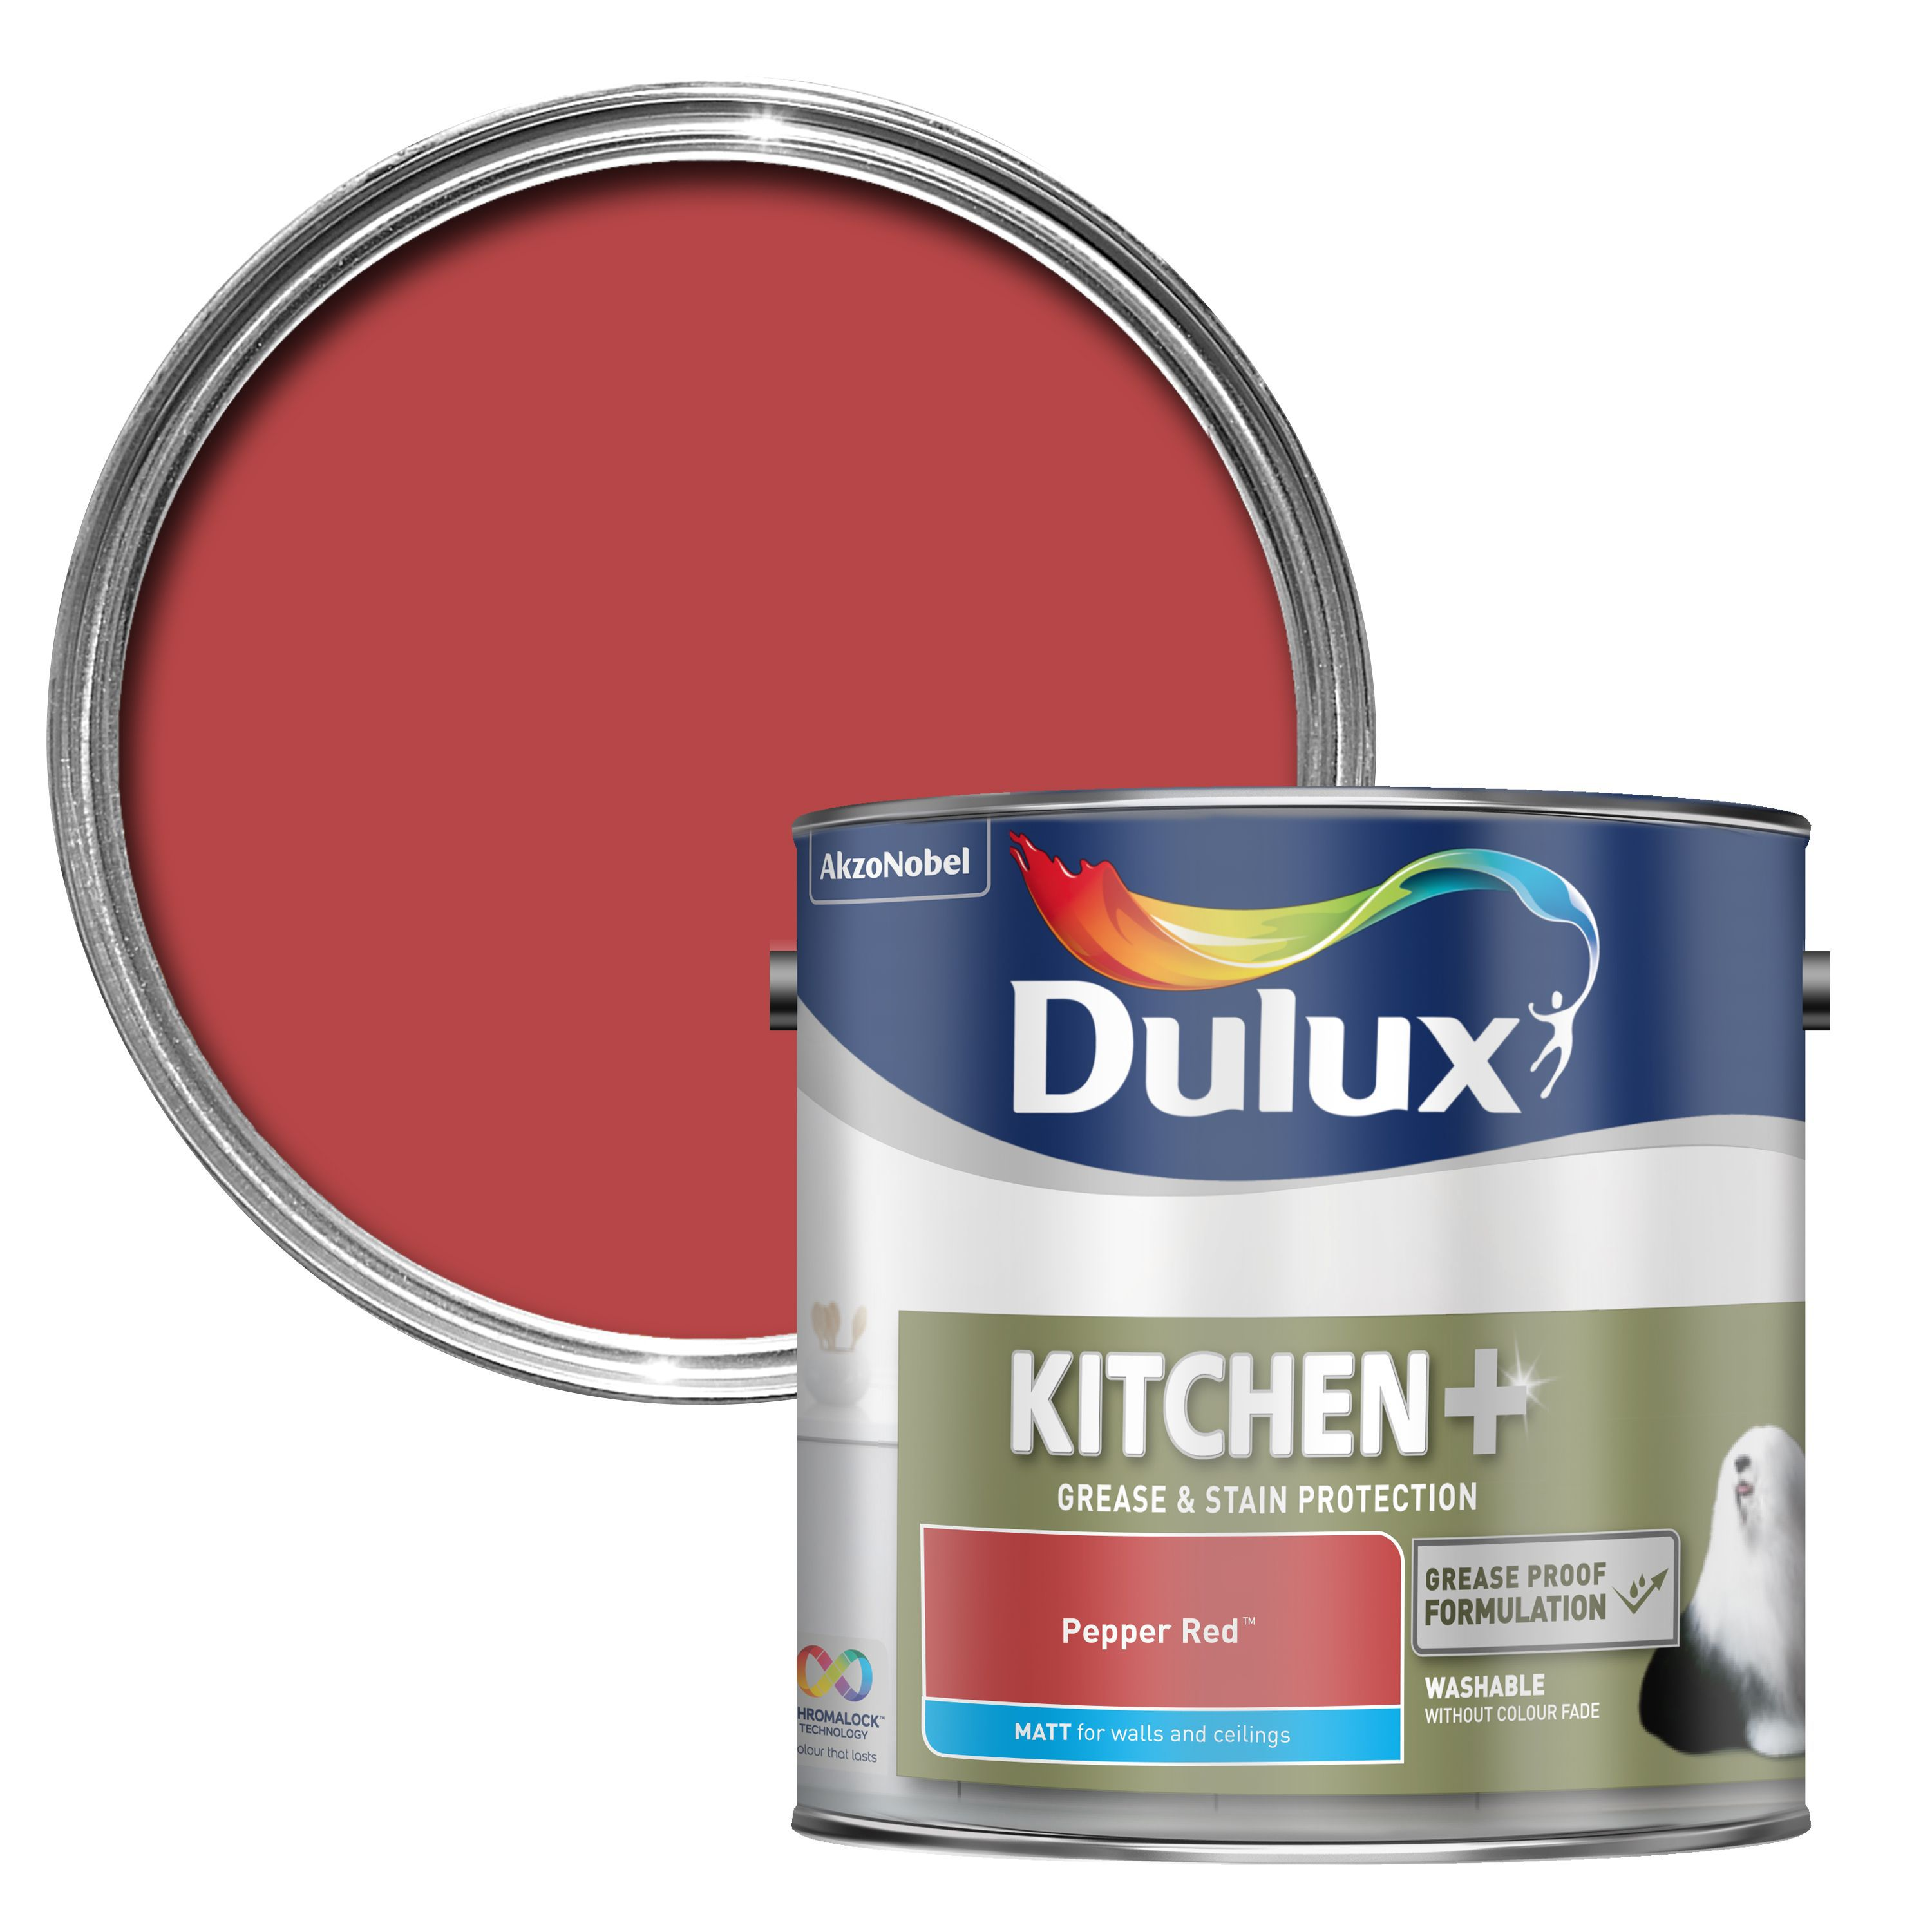 Dulux Kitchen Pepper Red Matt Wall & Ceiling Paint 2.5l